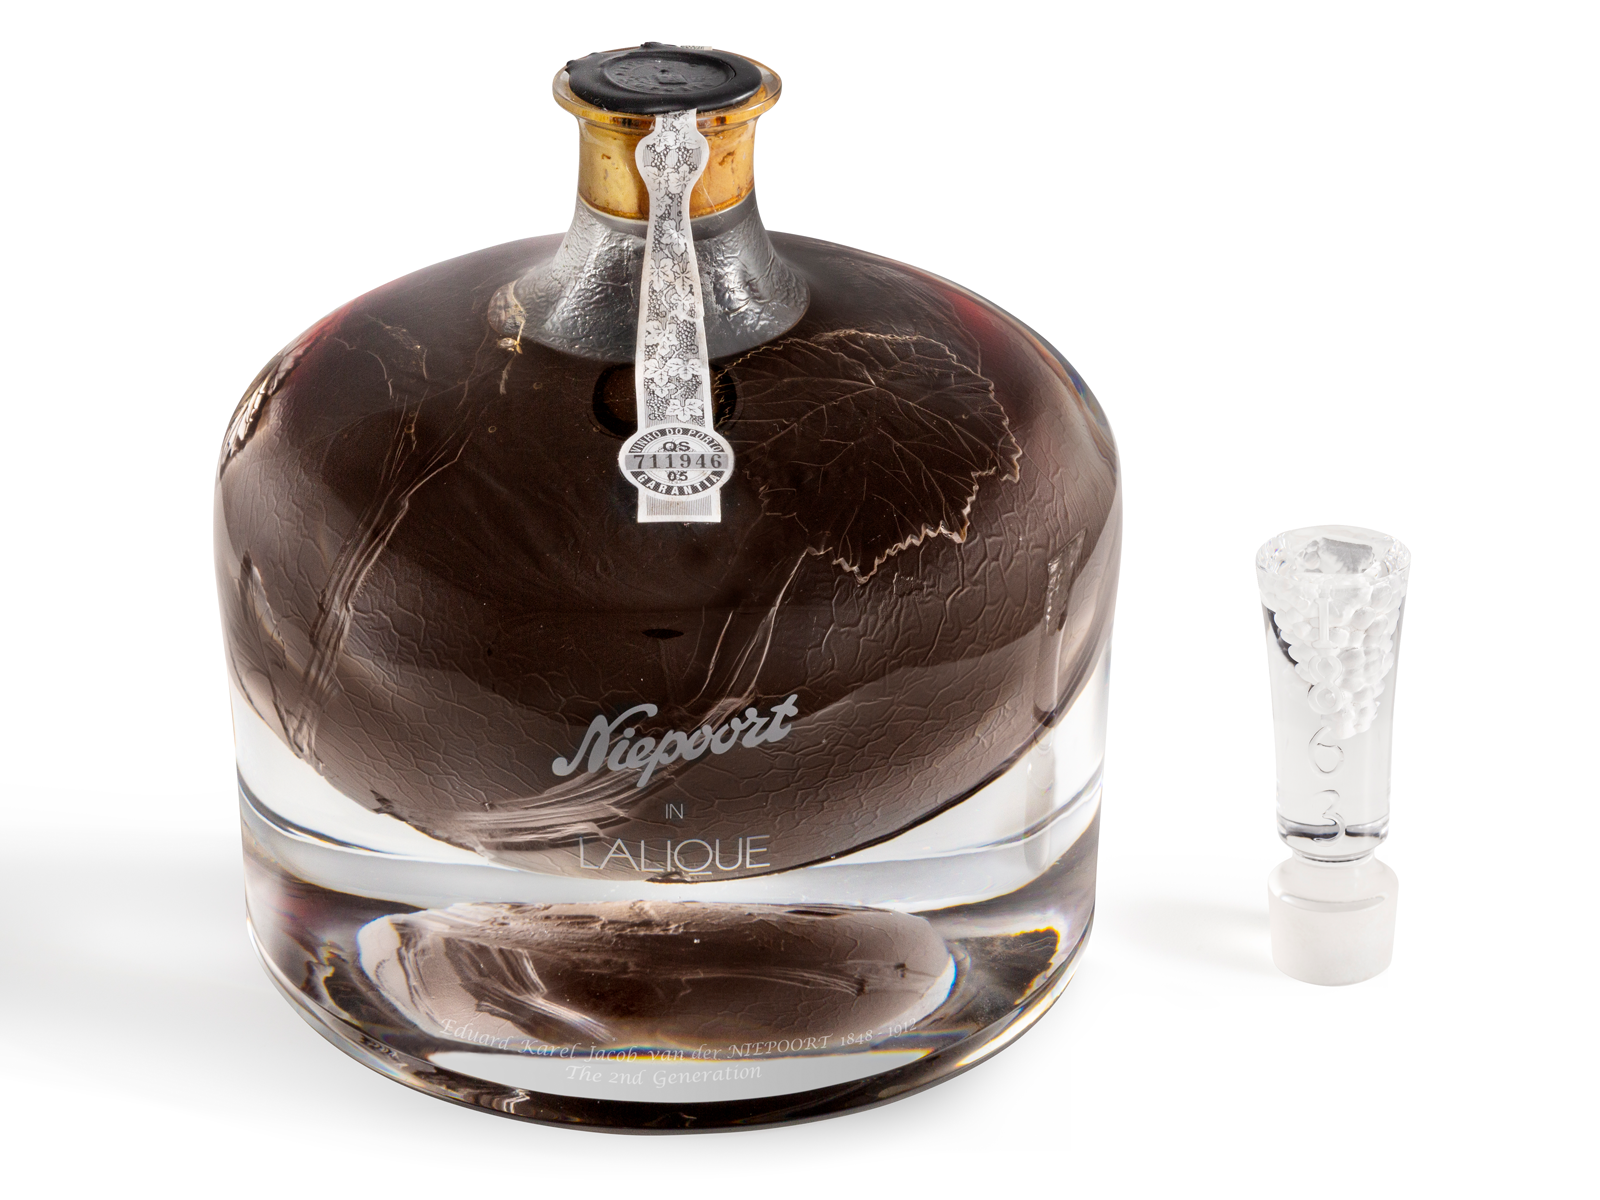 156-Year-Old Port In Lalique Crystal Decanter Sets World Record at Auction